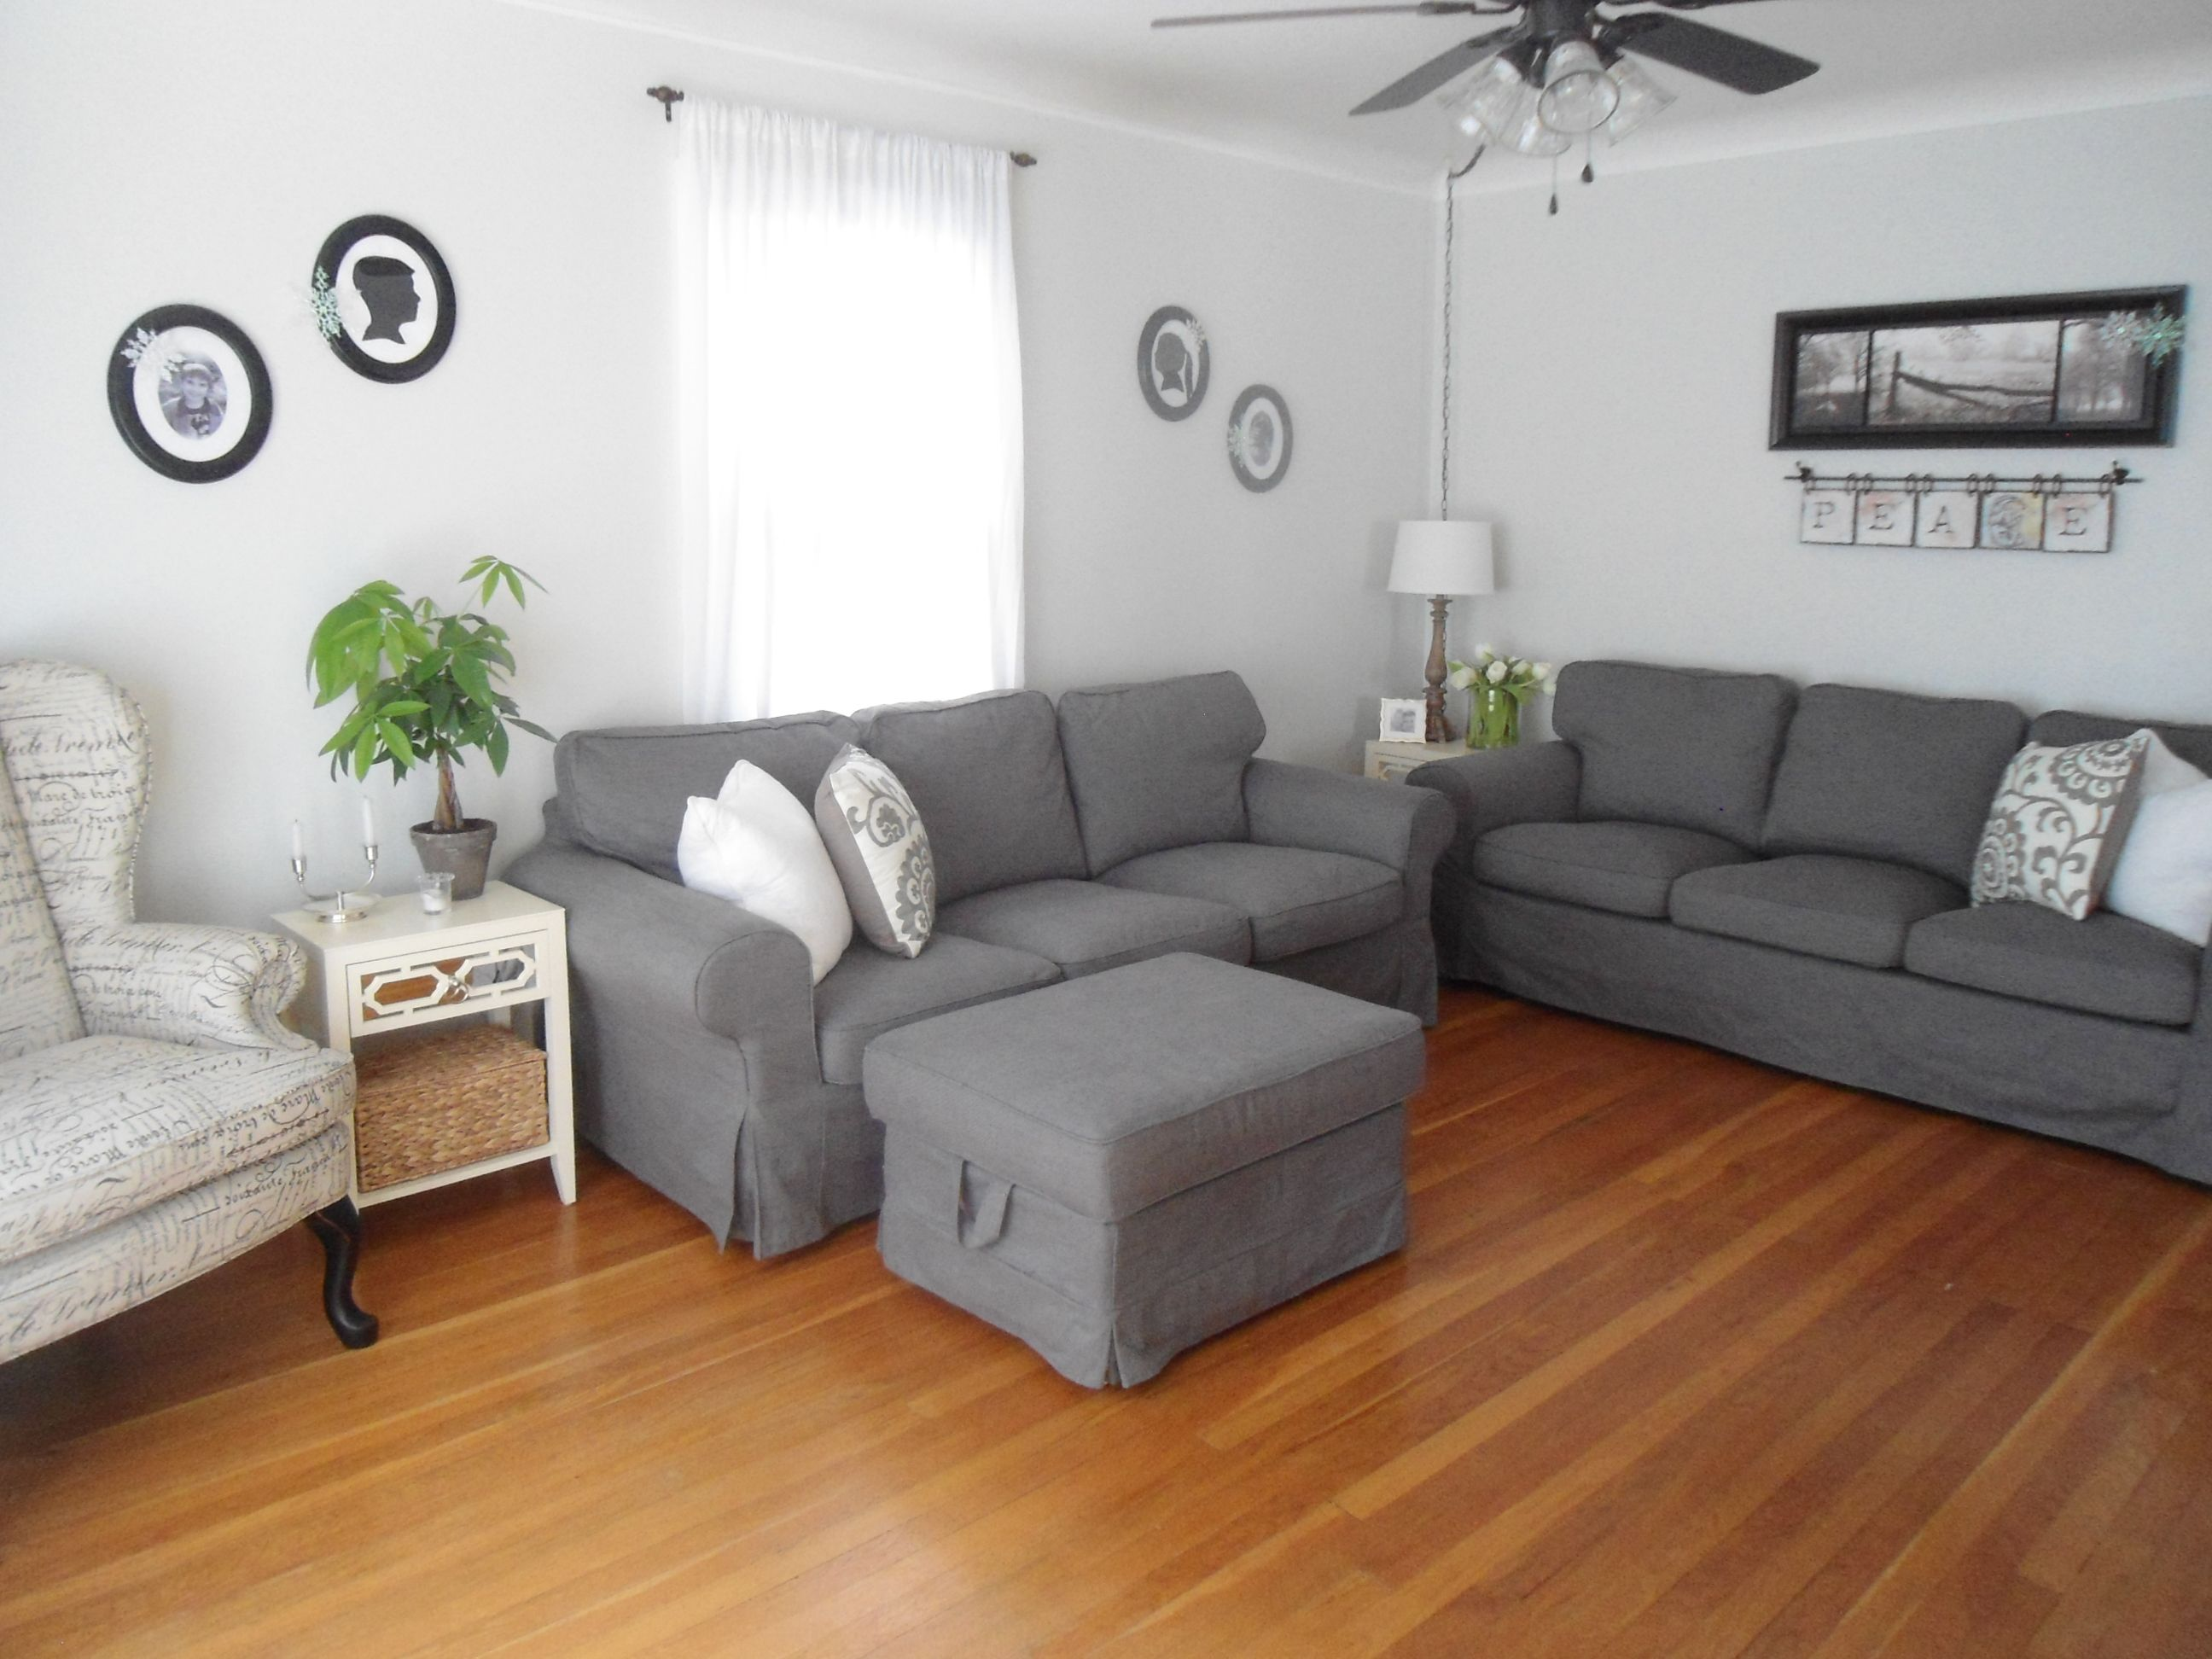 Grey Half Couch Neutral Living Room Paint Color Benjamin Moore Gray Owl